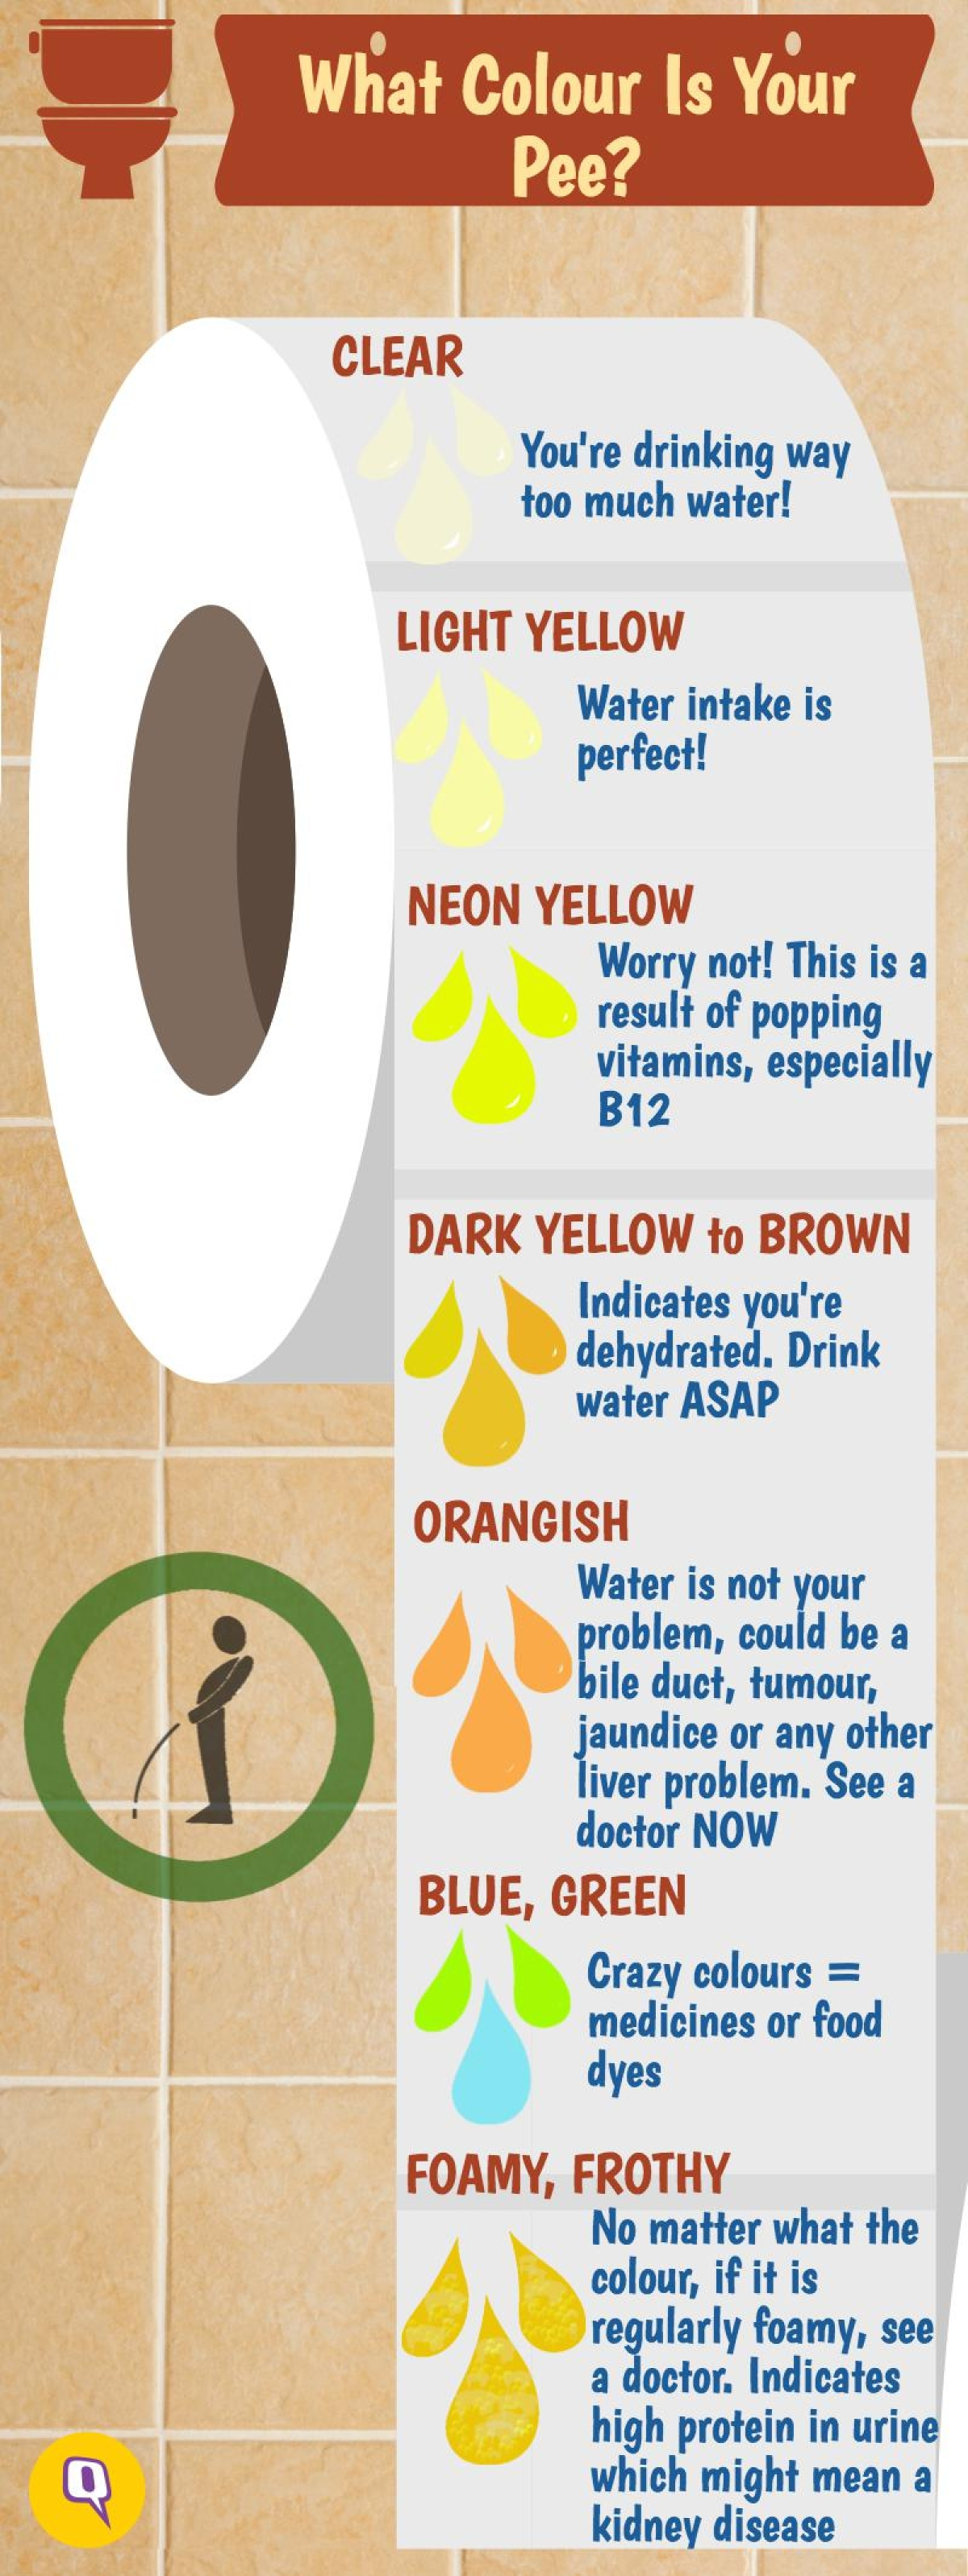 pee neon yellow after taking vitamins